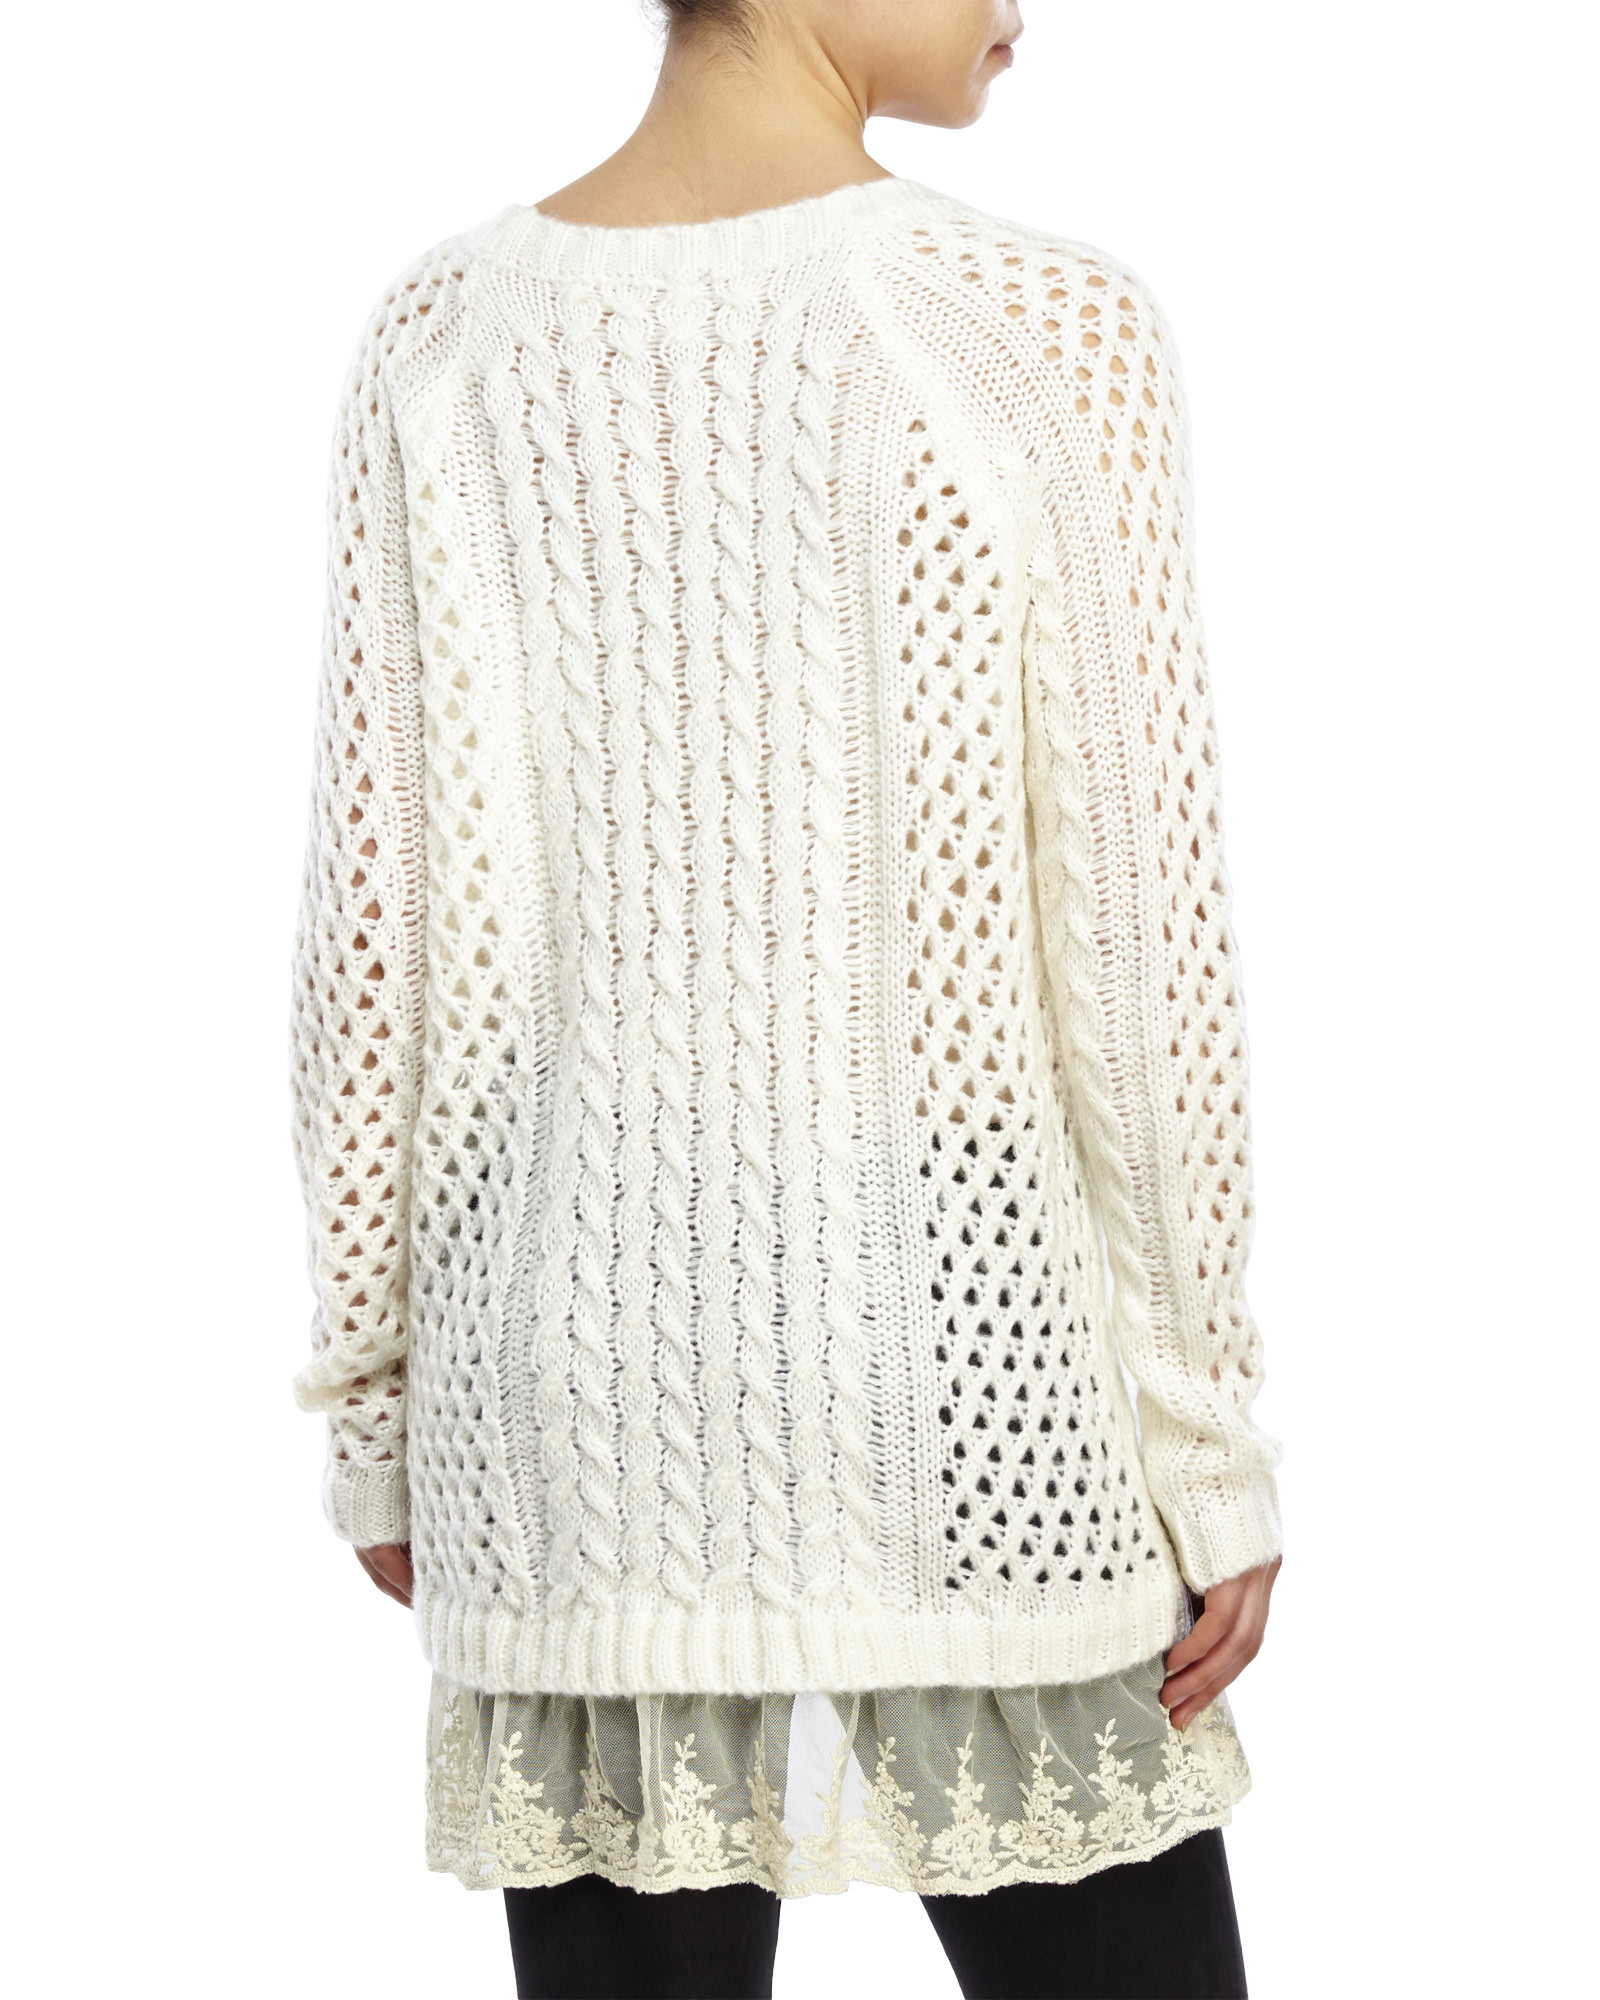 Pol Oversized Lace Trim Sweater in Natural | Lyst